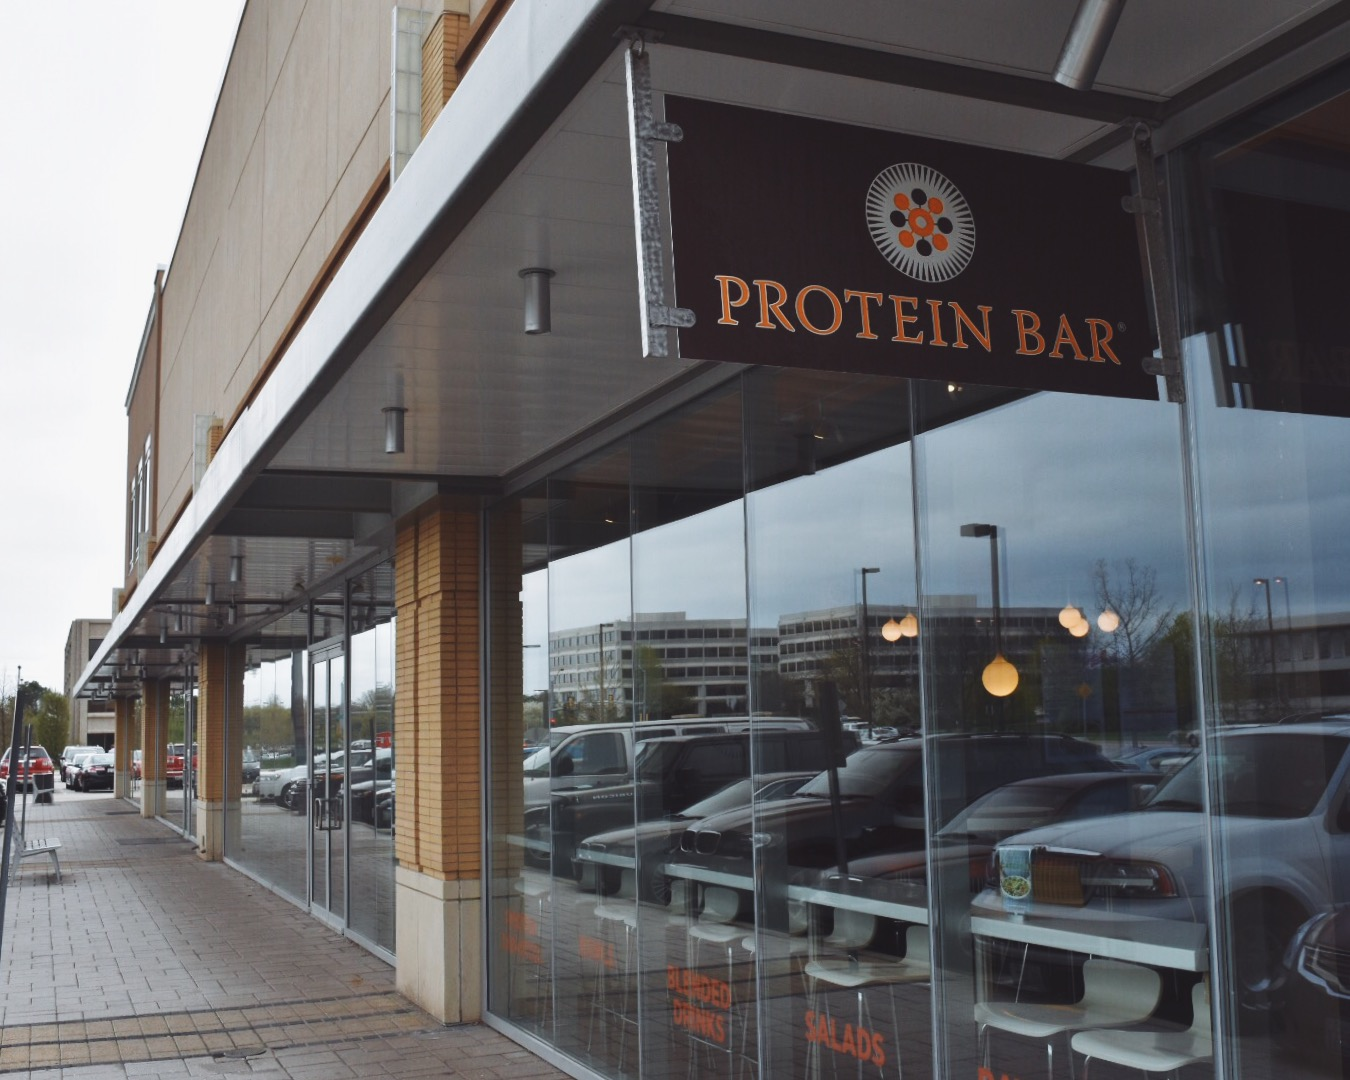 Excluding Chicago, Protein Bar has locations in Colorado and Washington D.C.